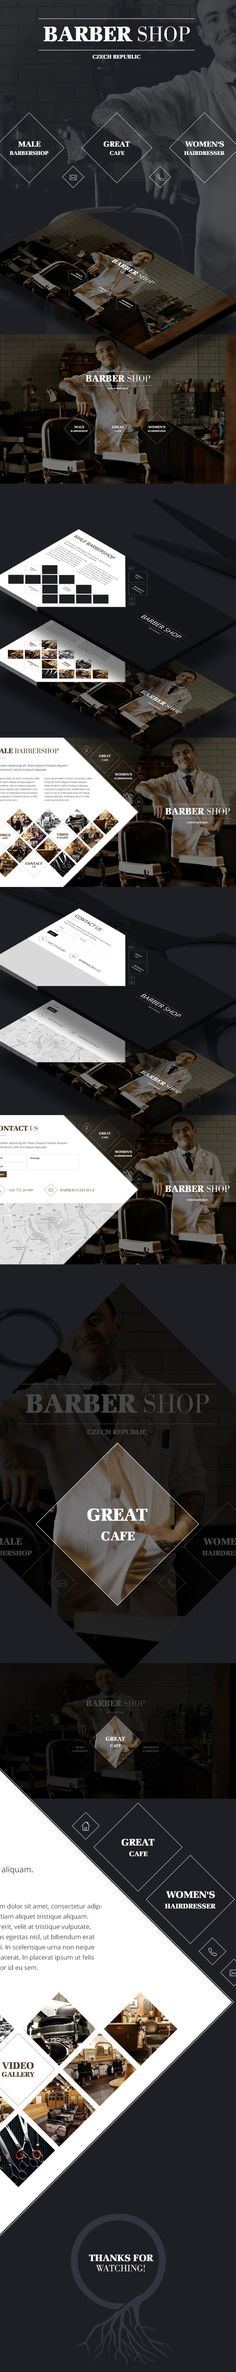 Barbershop Czech Republic on Behance